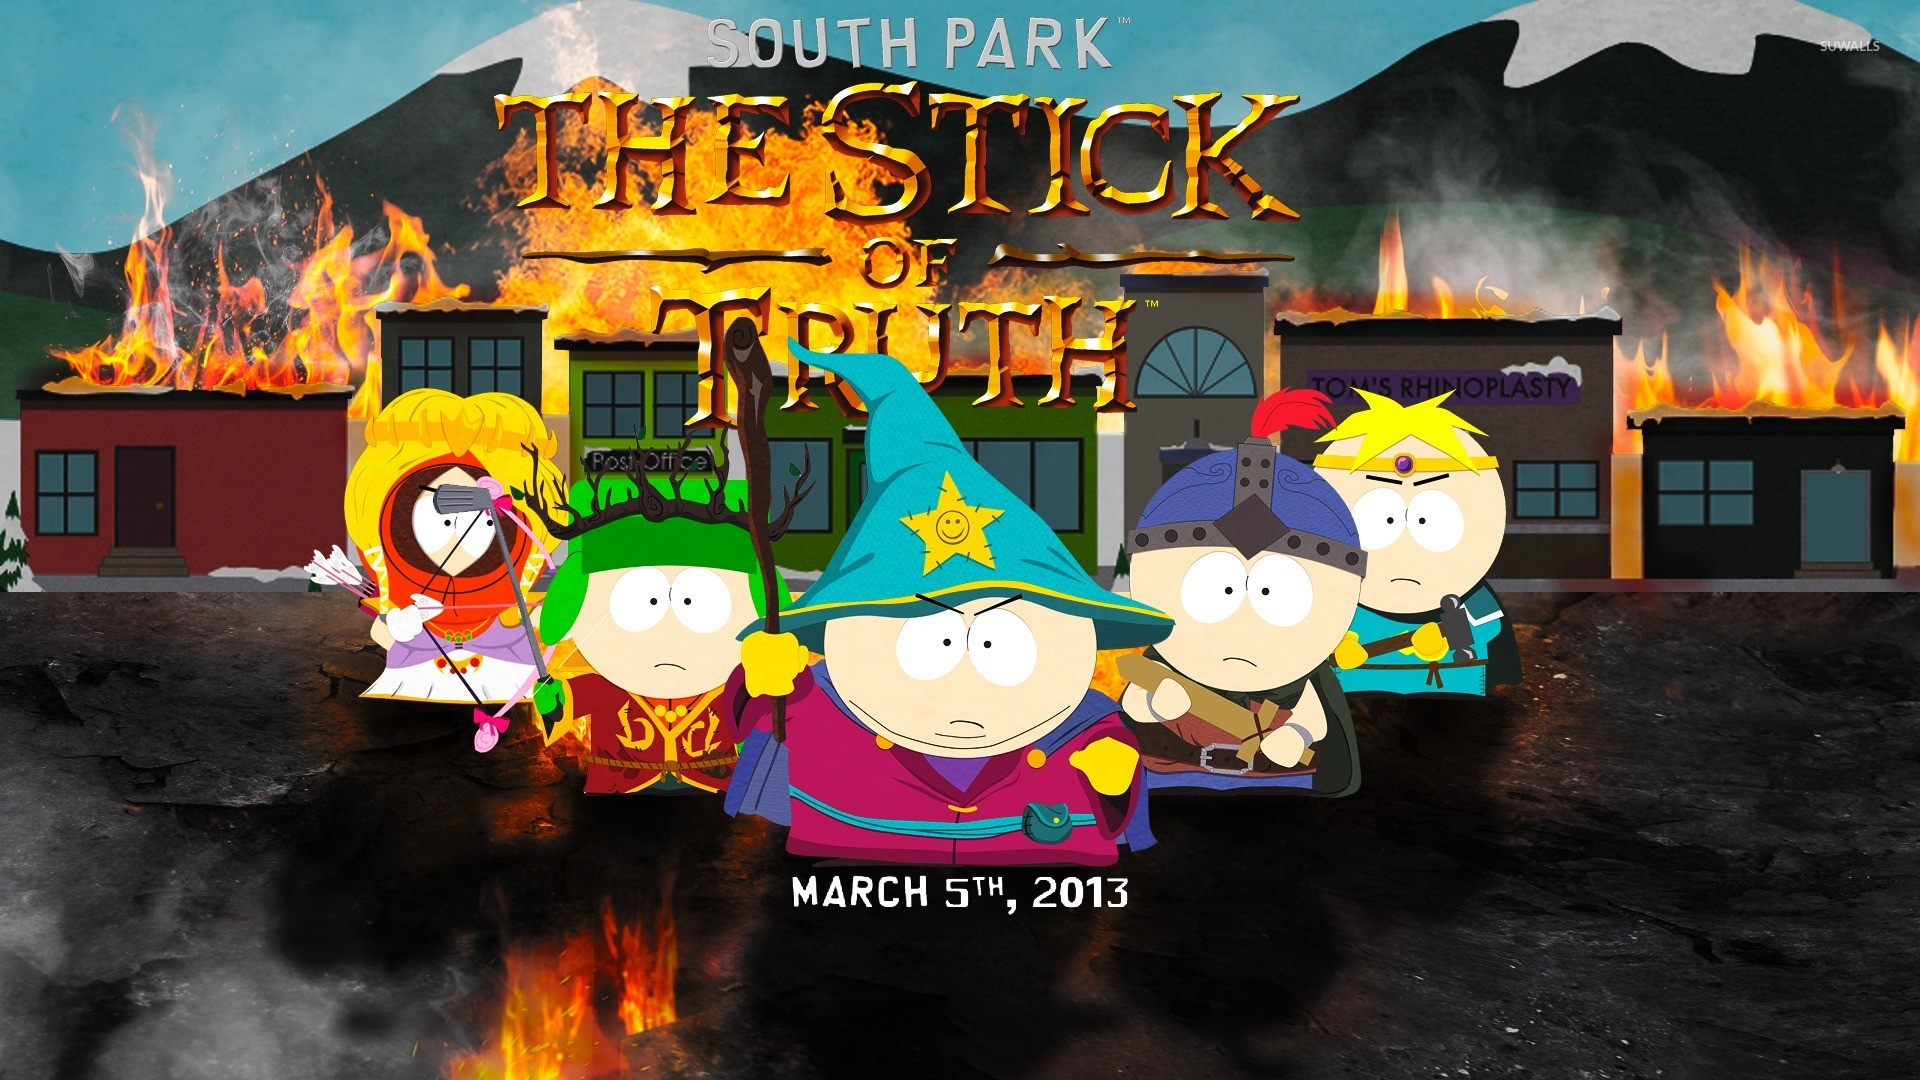 South Park South Park The Stick Of Truth Background 1969070